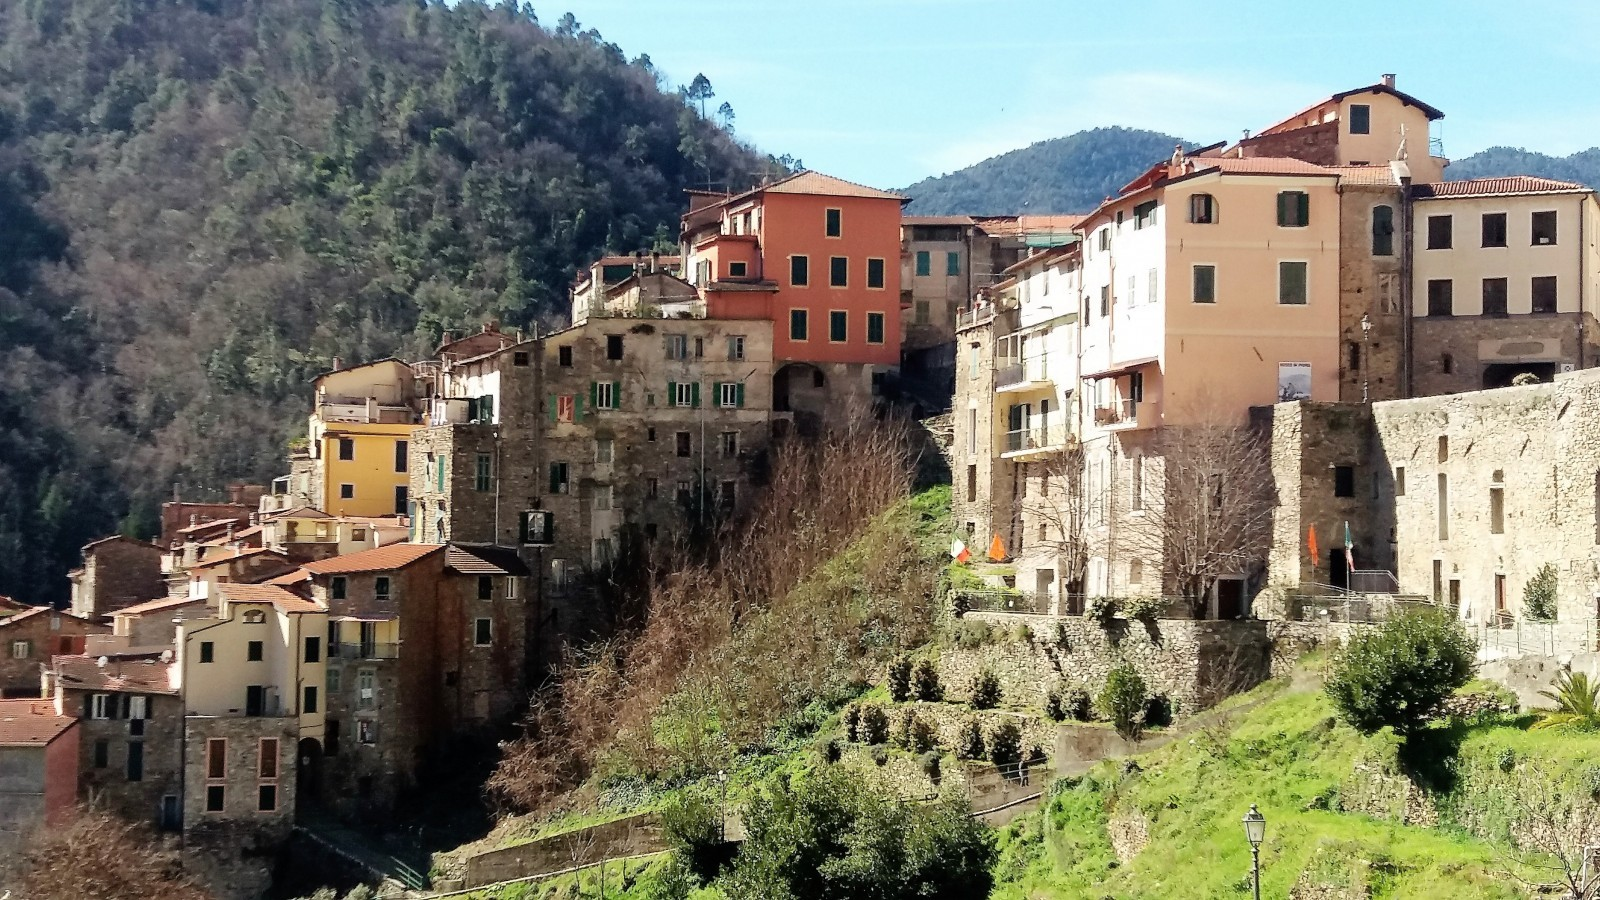 Pigna villages in Liguria